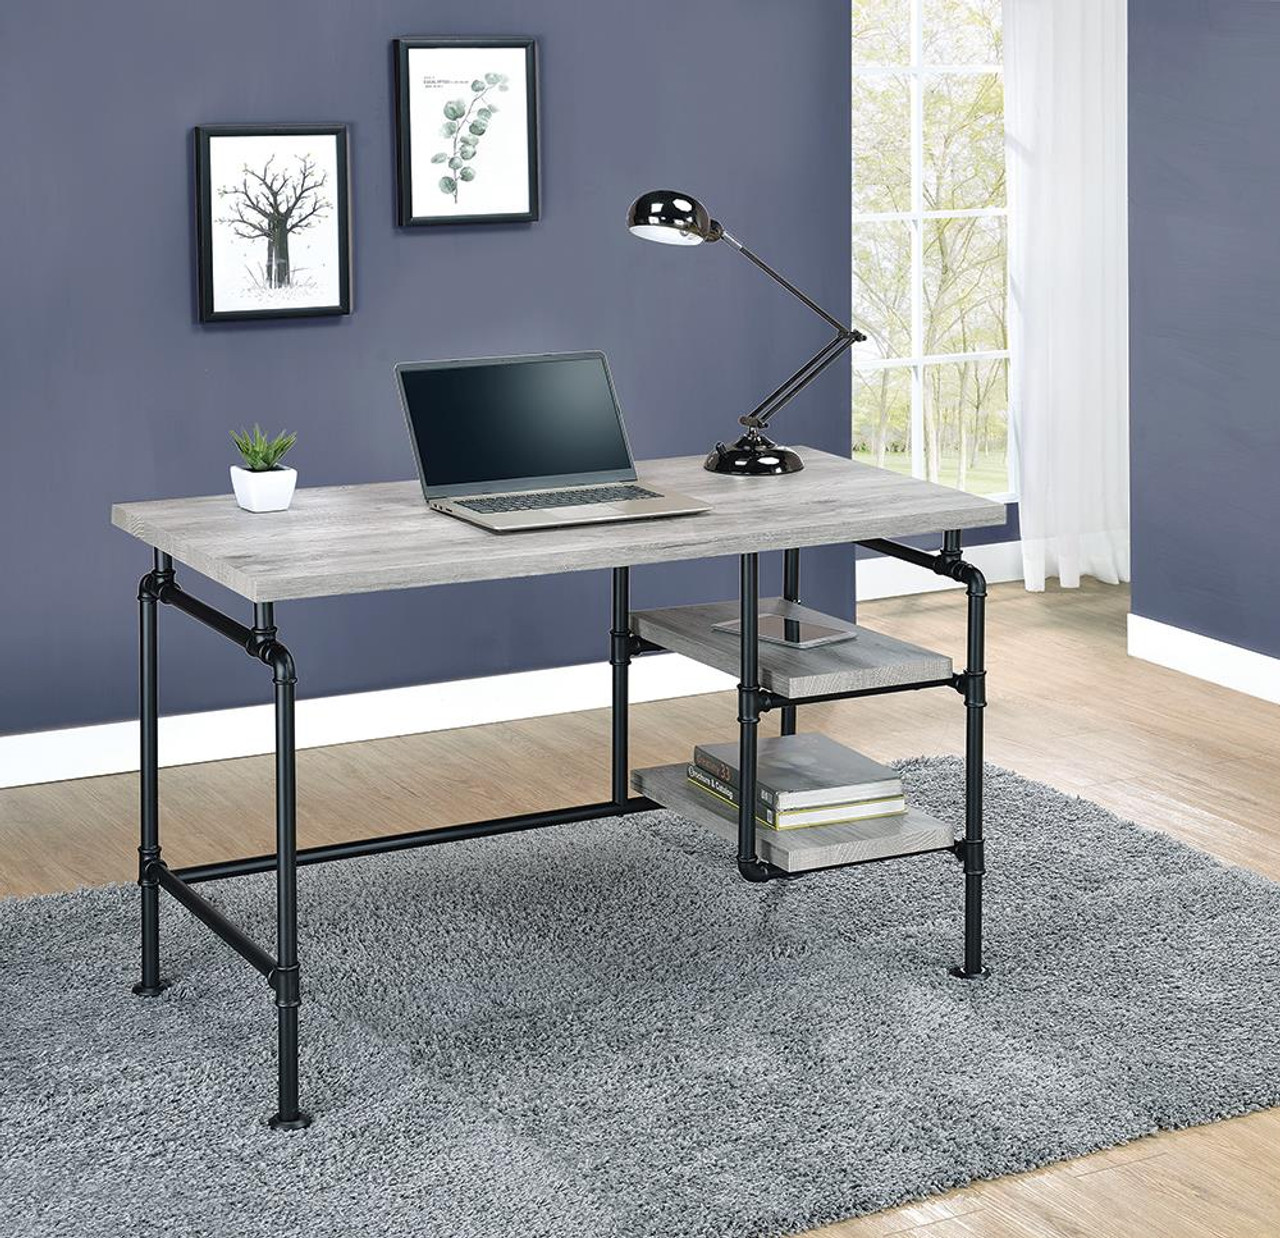 The Delray Collection Delray 2 Tier Open Shelving Writing Desk Grey Driftwood And Black 803701 Available At 5 Star Furniture Serving Houston Tx And Surrounding Areas